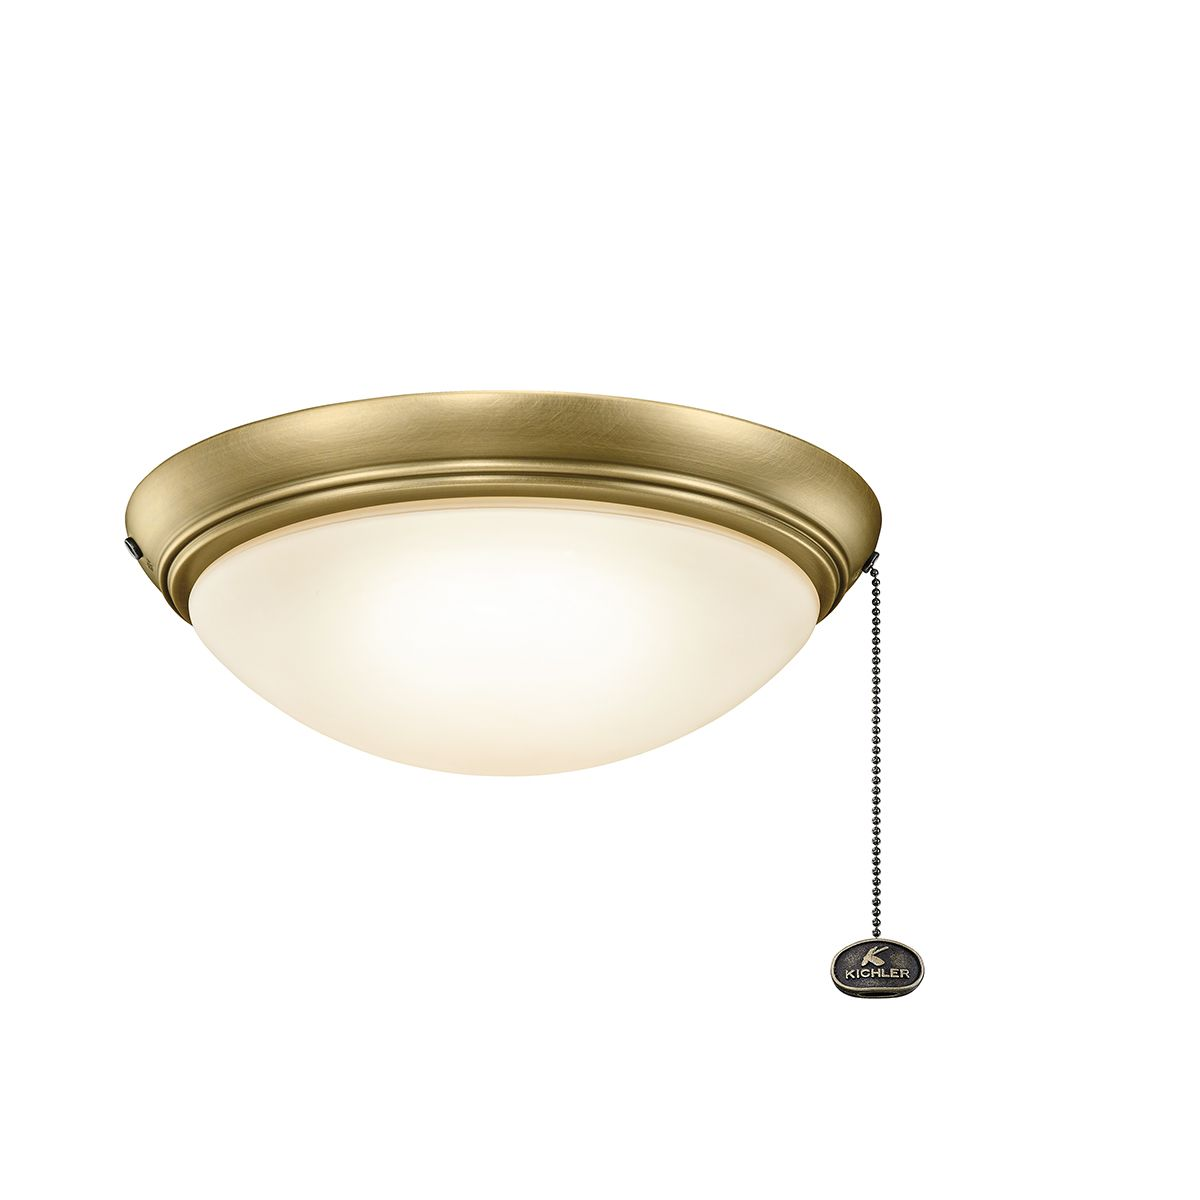 Kichler Accessories Low Profile LED Ceiling Fan Light Kit in Natural ...